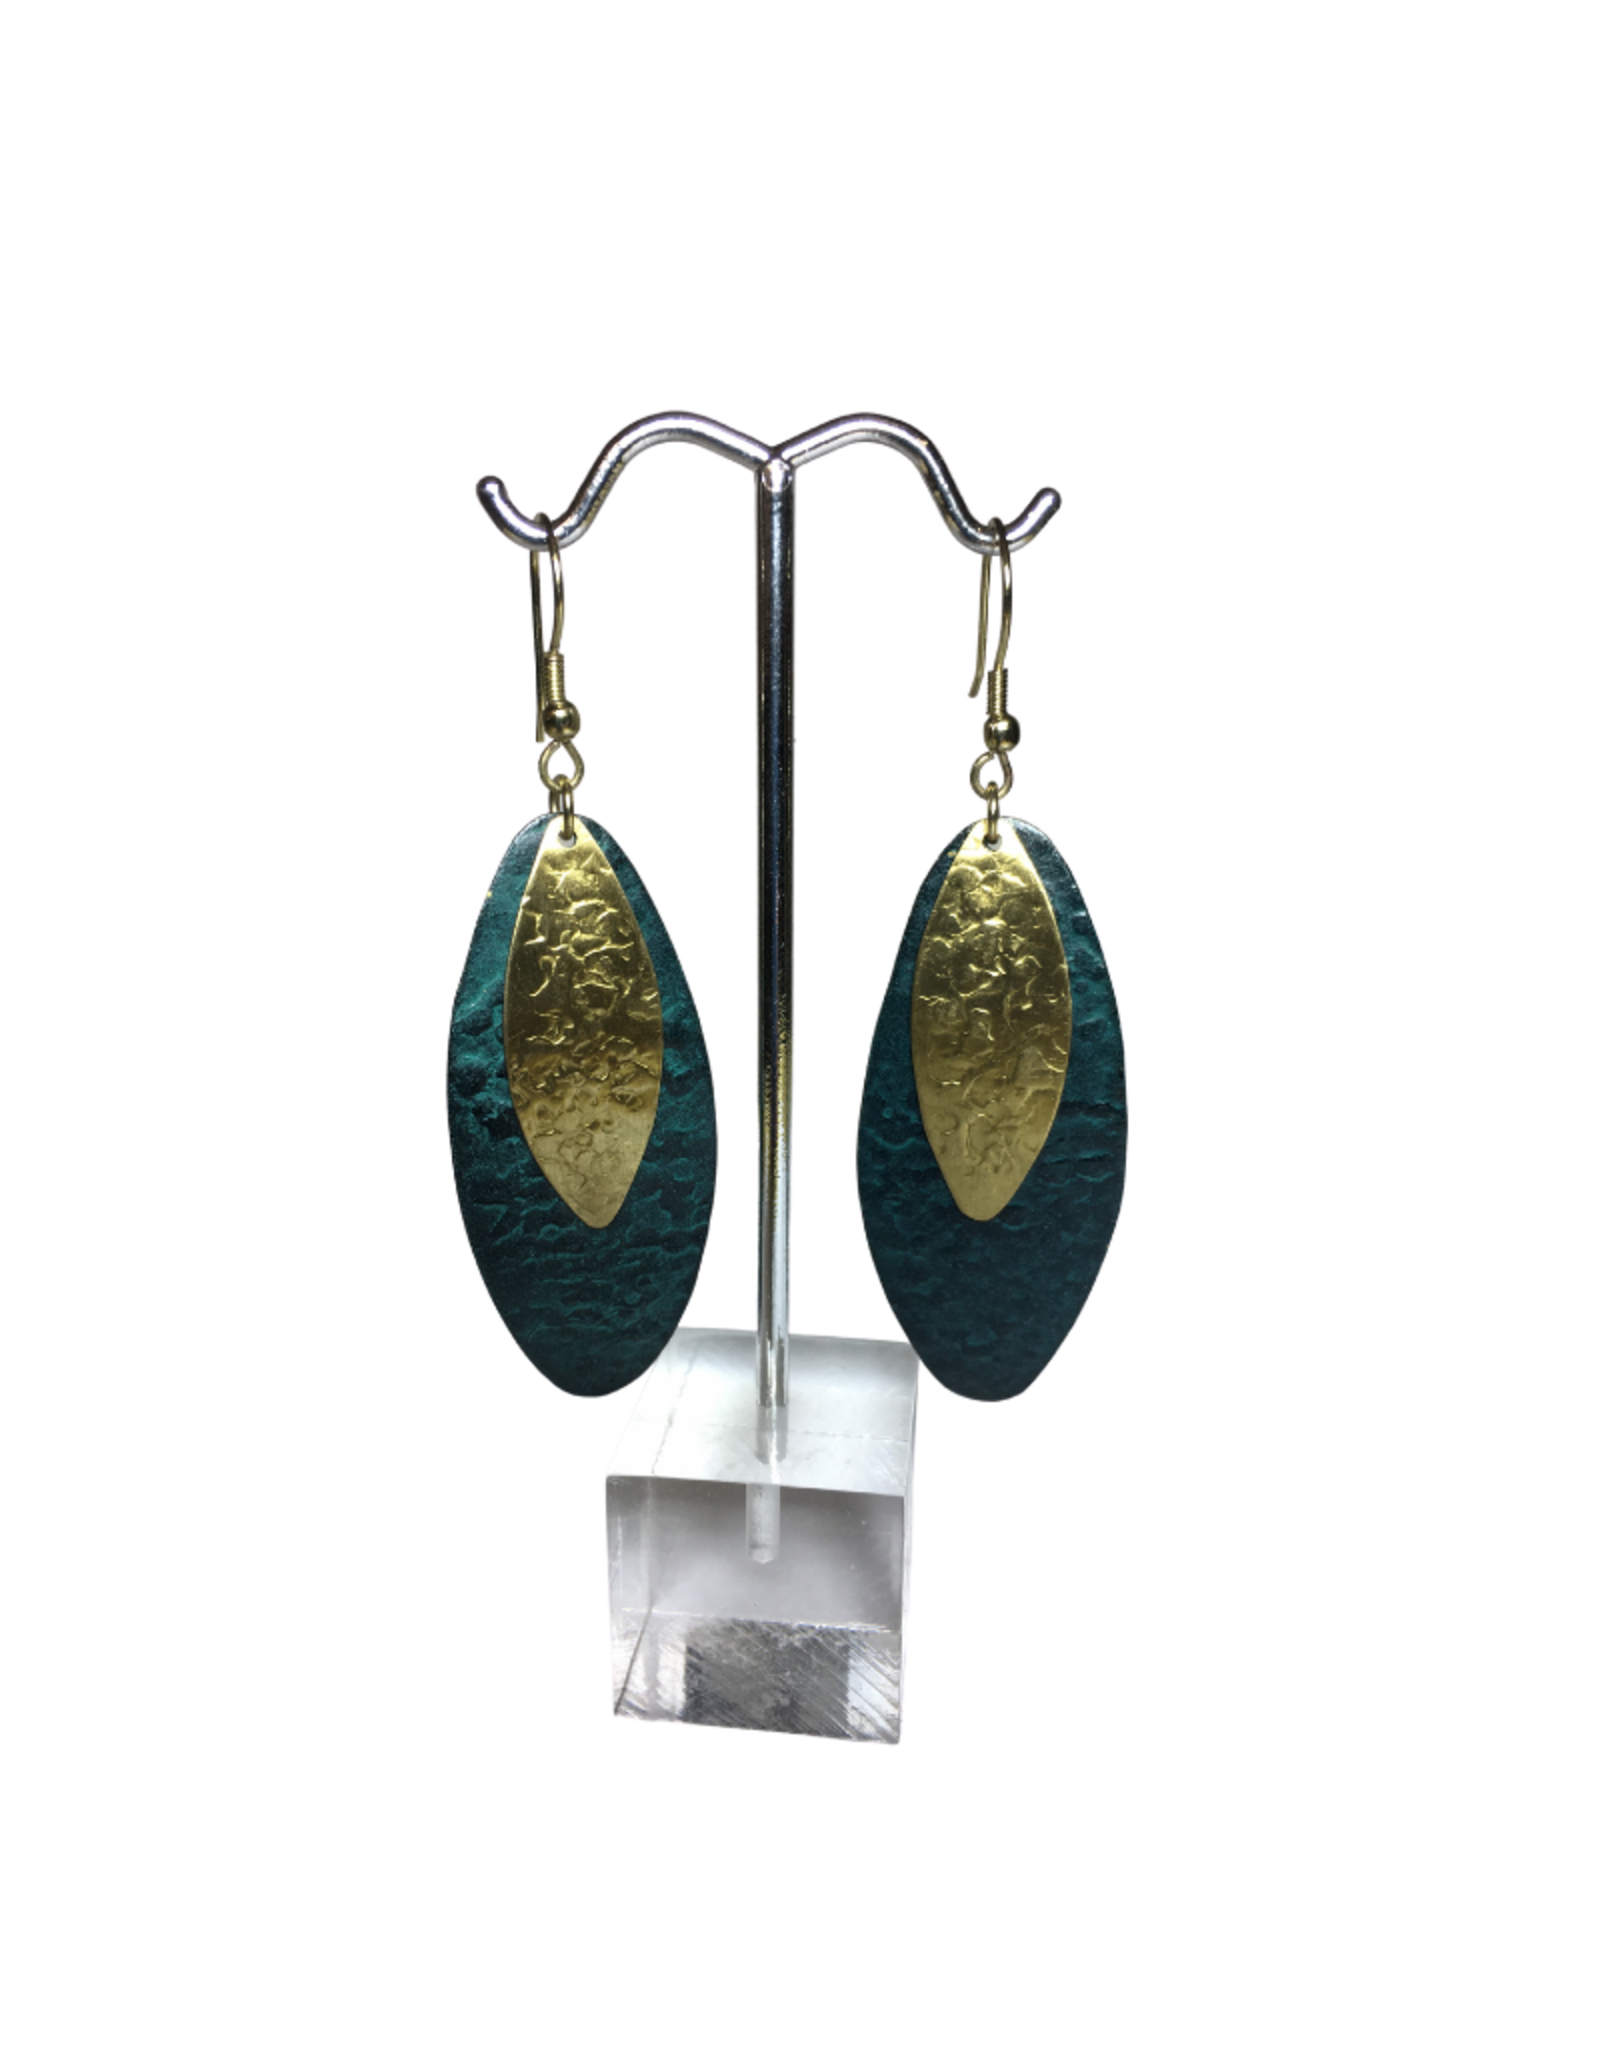 Ten Thousand Villages Teal Oval Earrings